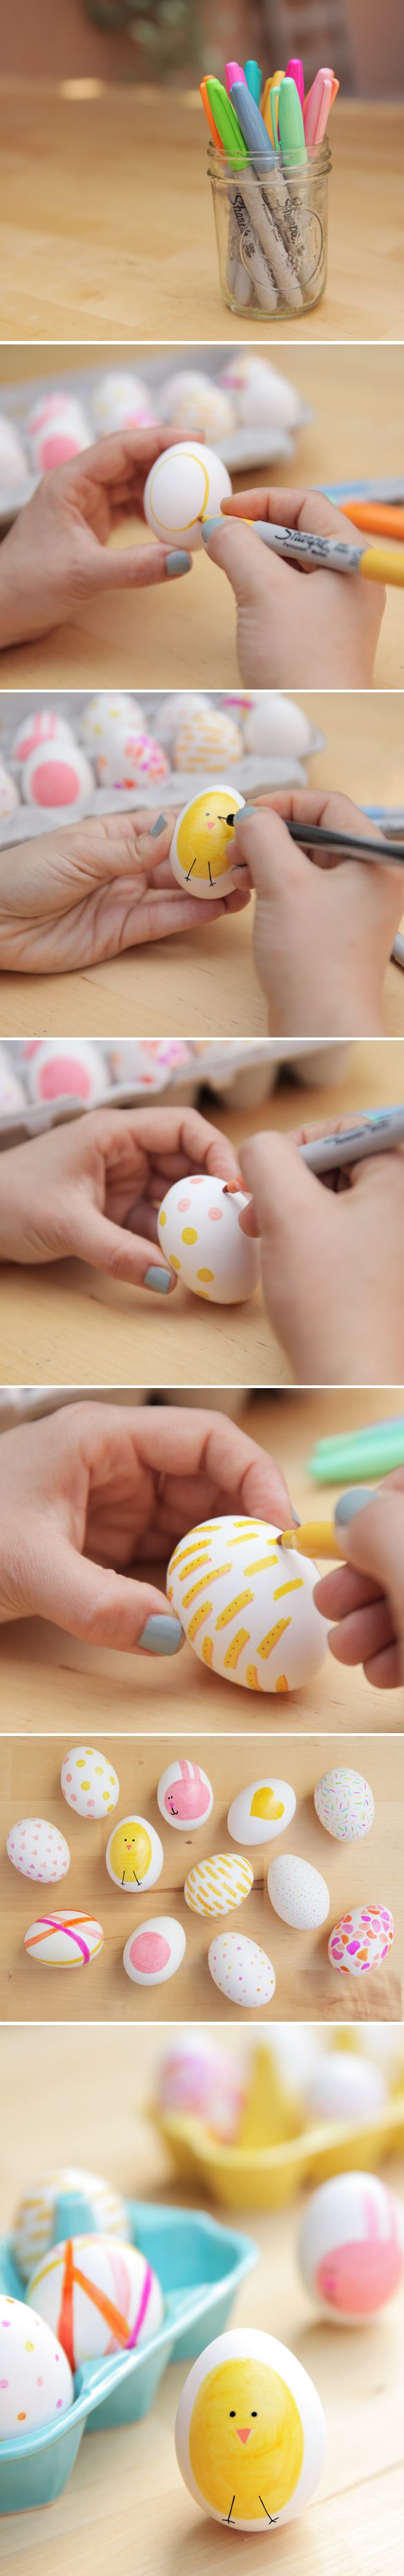 Egg decorating with Sharpies. Such a great idea! So much better than dying them